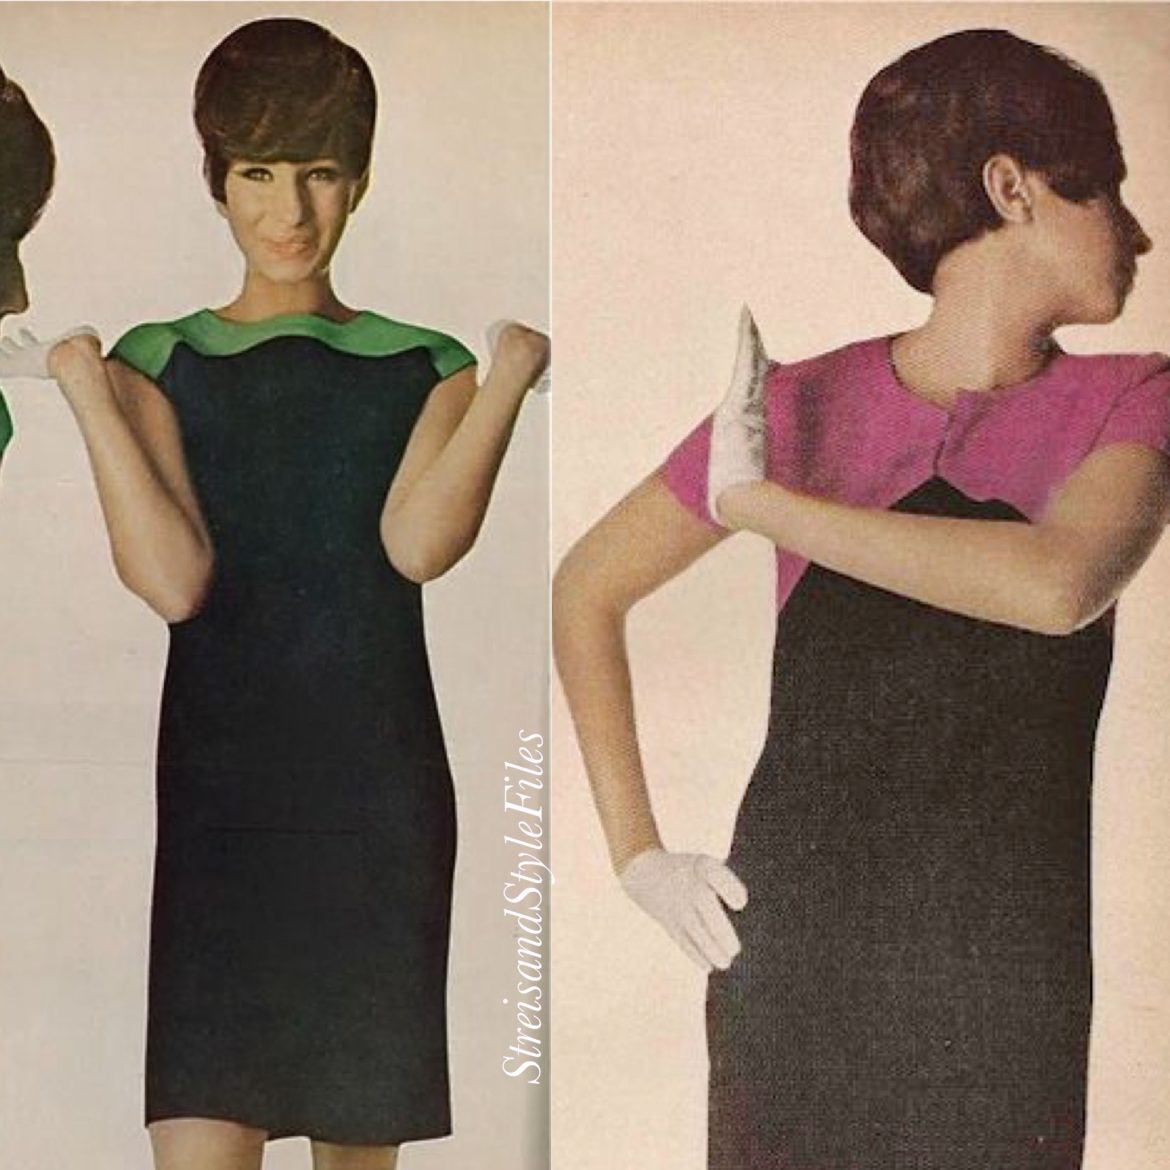 In Mod Kimberly Knitwear, August 1965 Vogue